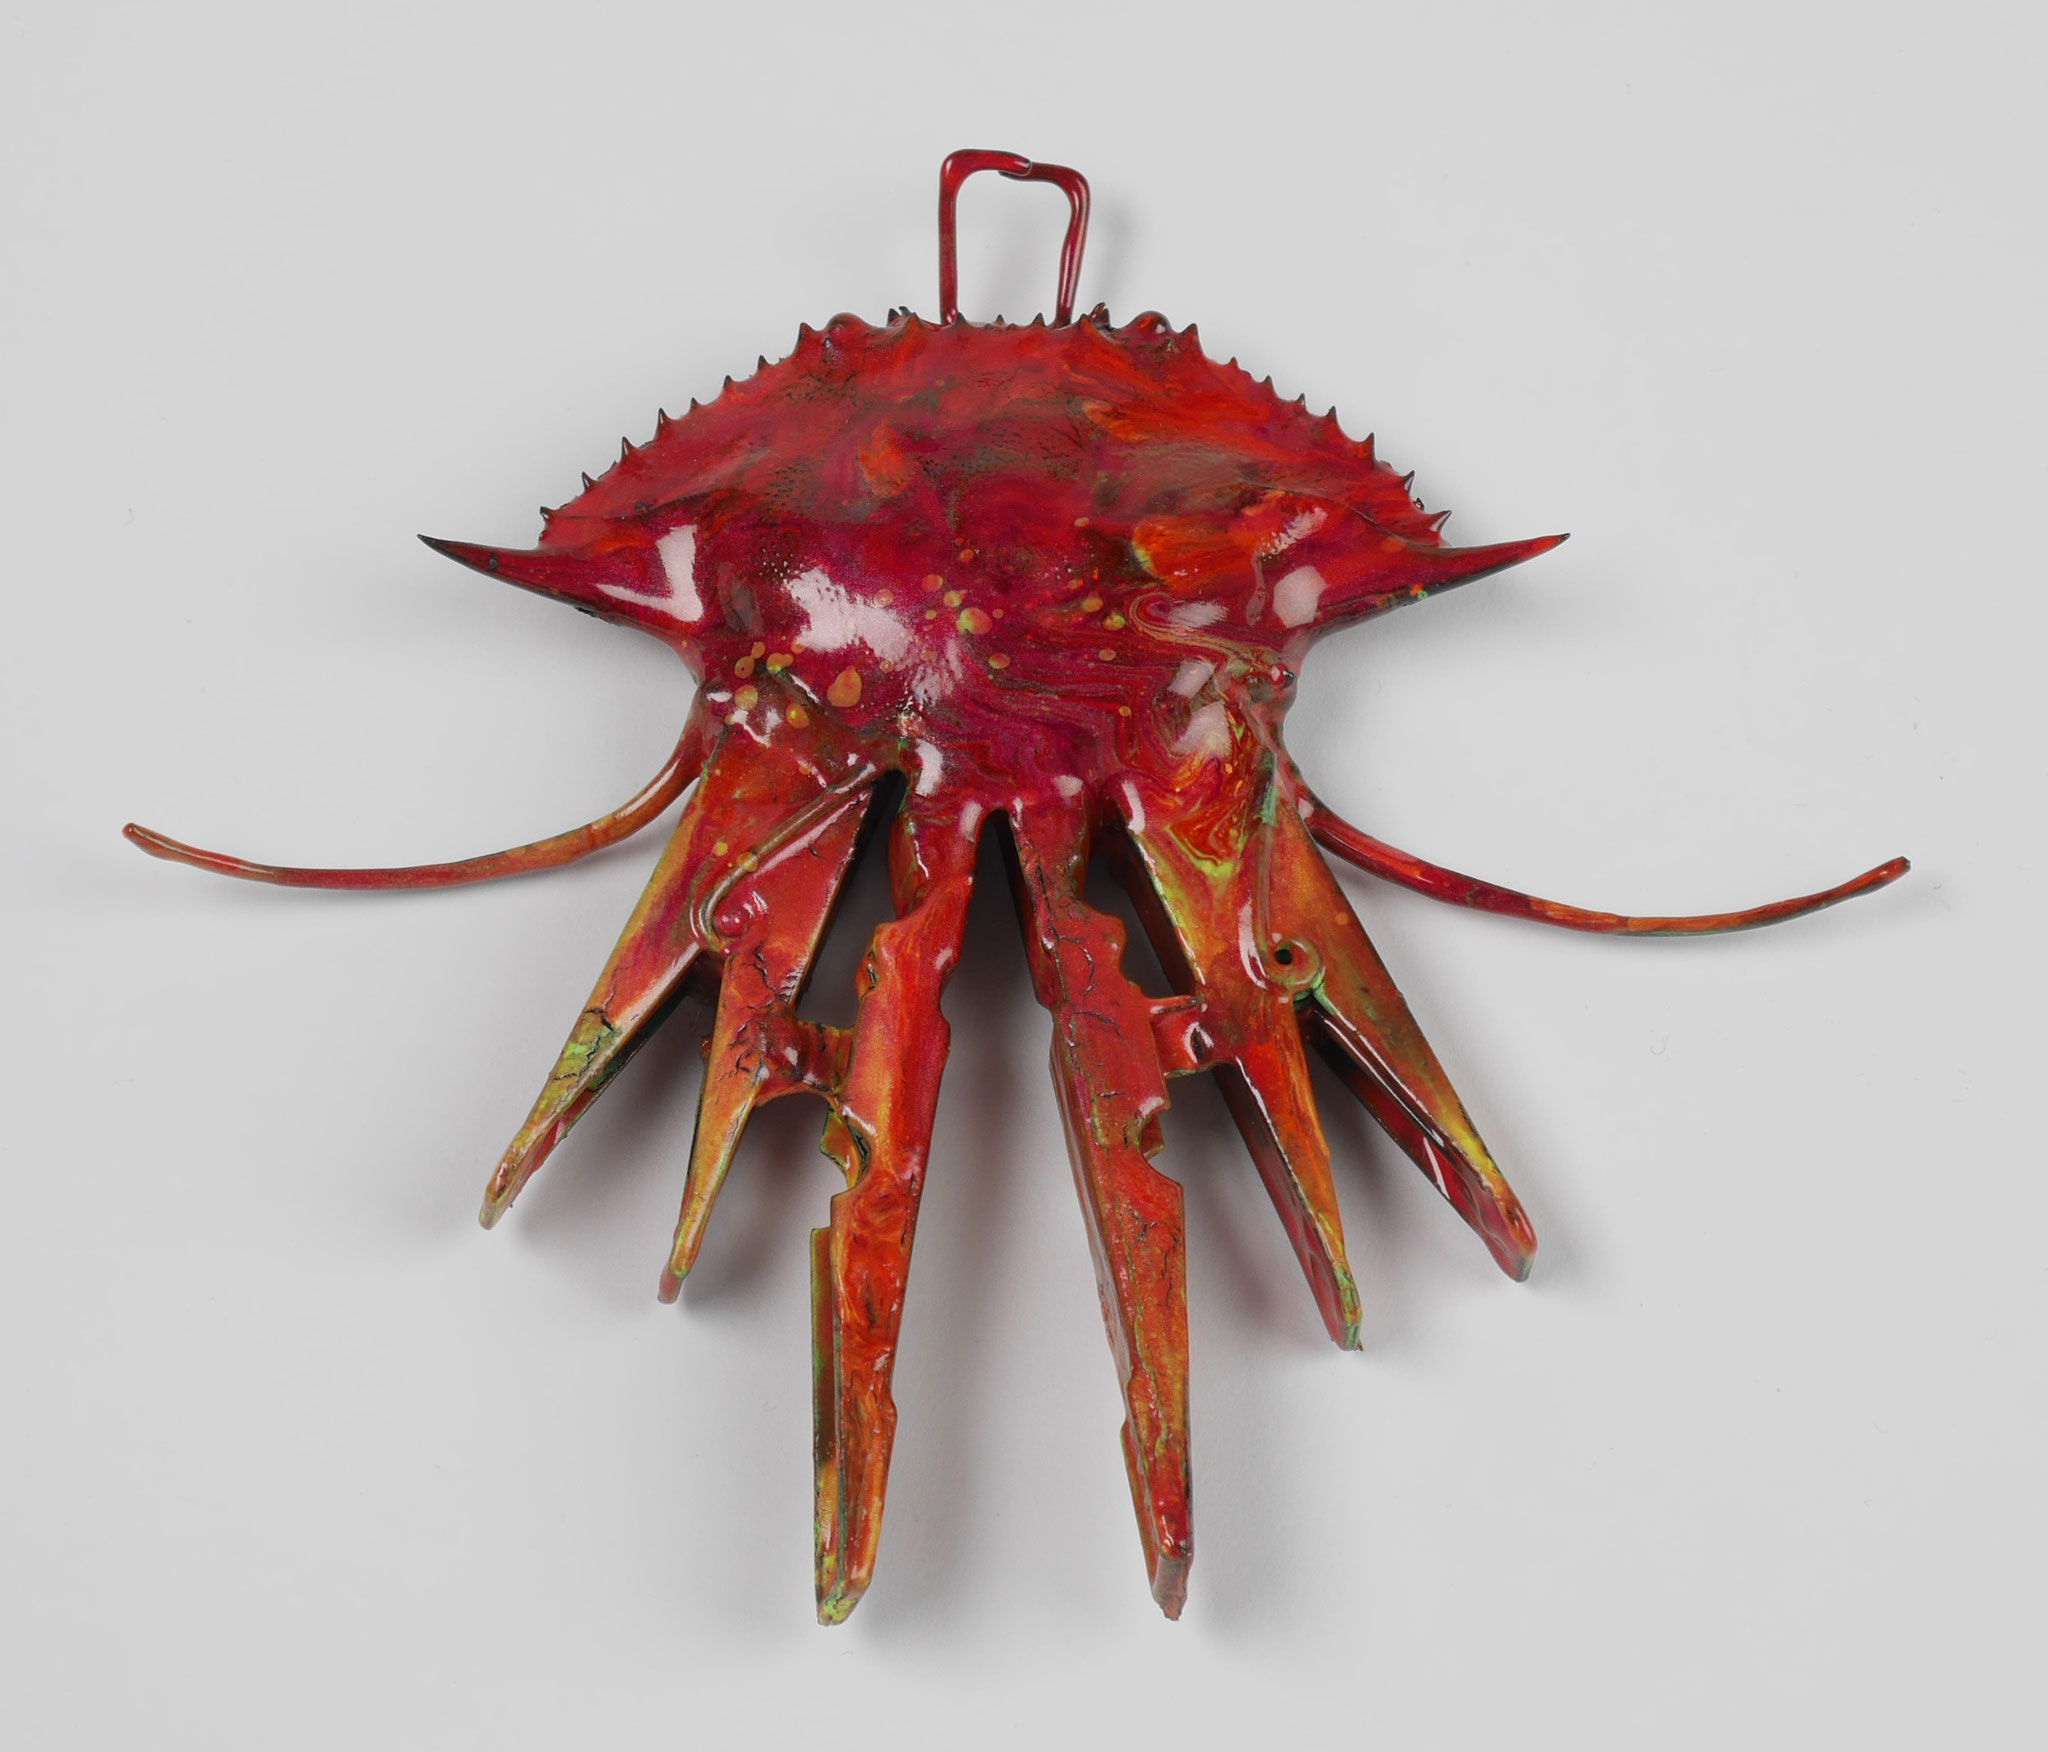 #10, 2016, crayfish carapace, clothes pegs and snake ribs coated with epoxy resin, 13x14,5x2cm